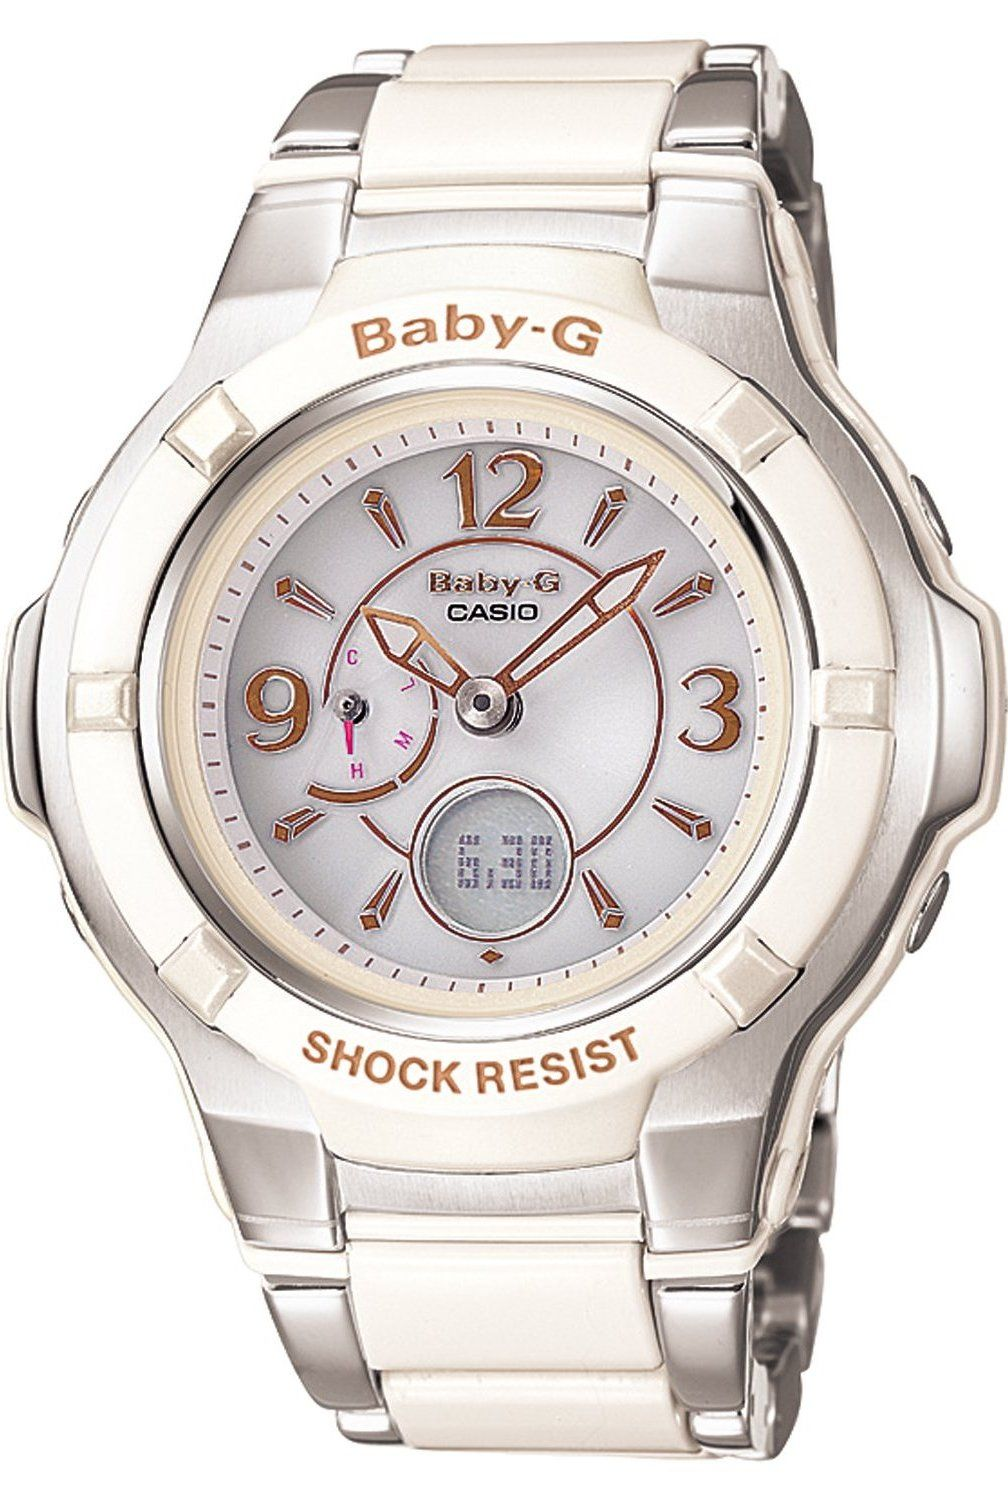 Casio Baby-G Composite Line Tough Solar Radio-Controlled Multiband 6  BGA-1200C-7BJF Women s Watch Japan import 6cbcae8bb4